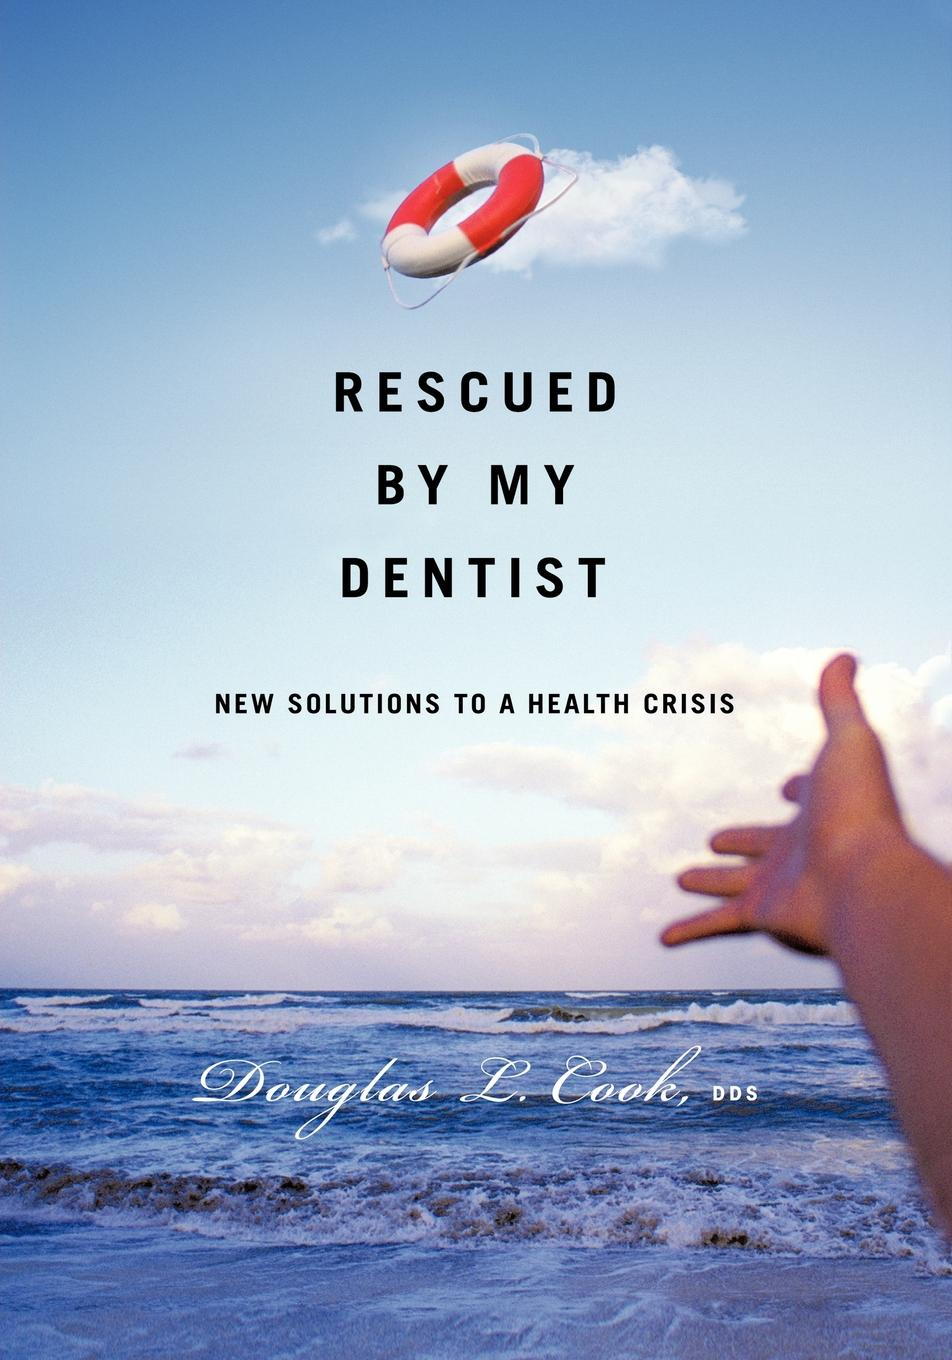 Douglas L. Cook Rescued by My Dentist. New Solutions to a Health Crisis